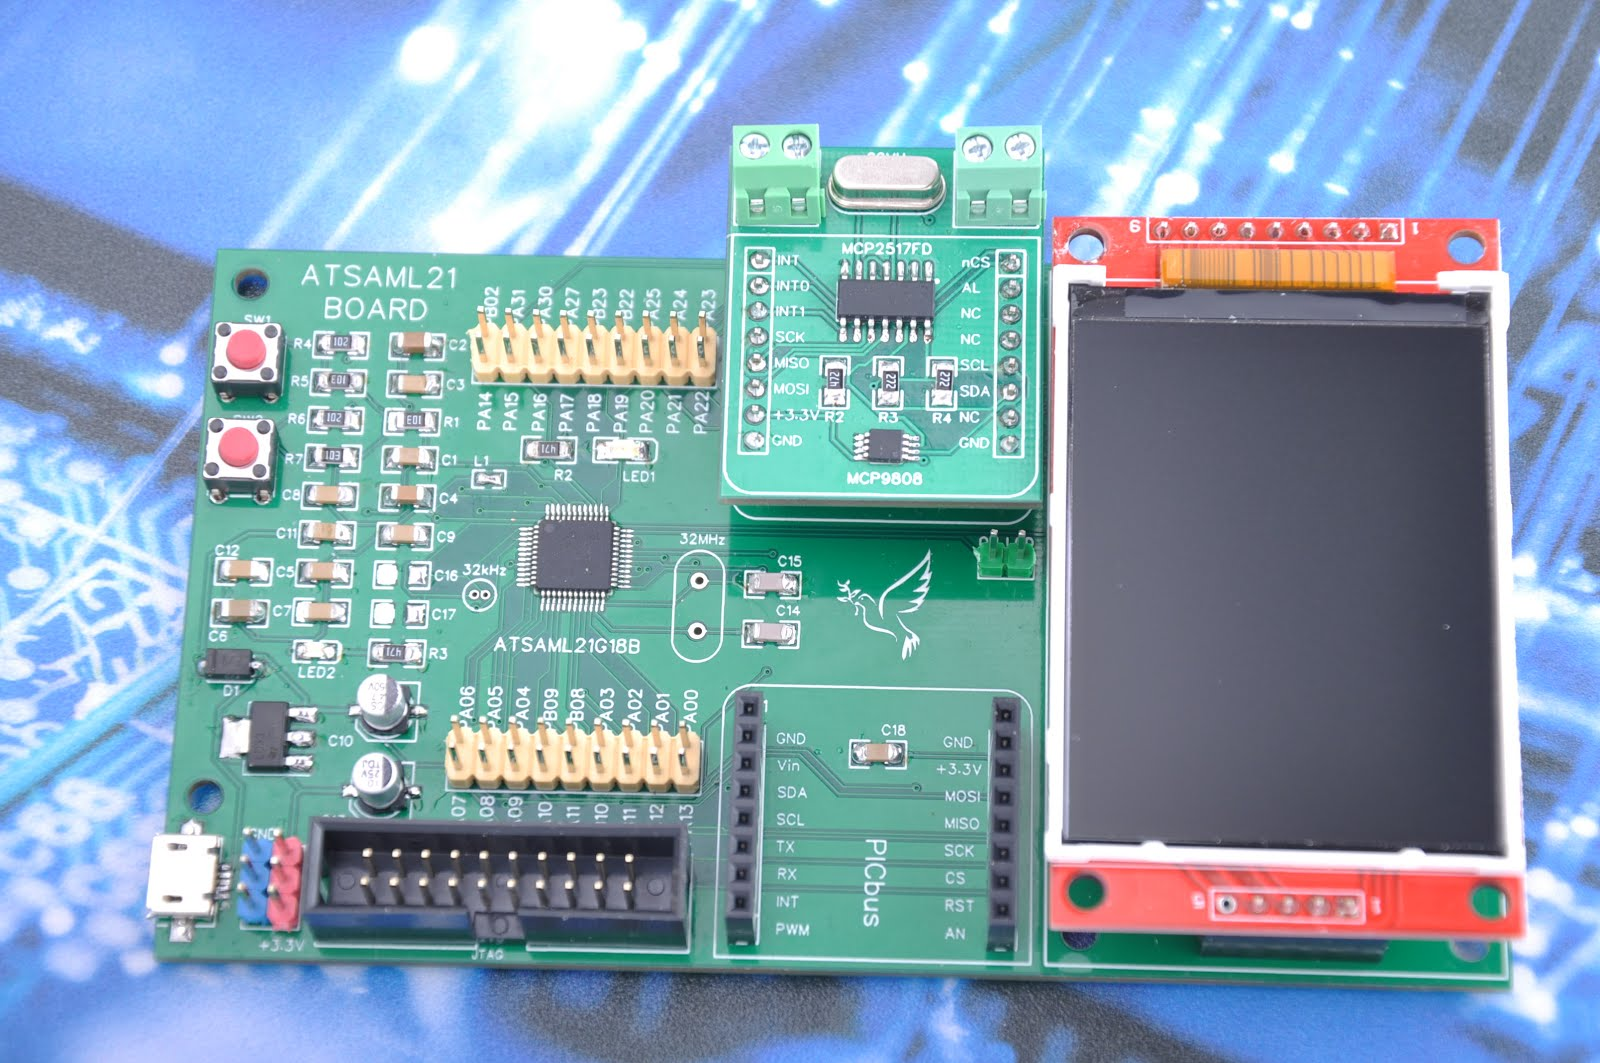 ATSAML21 - Low cost development Board